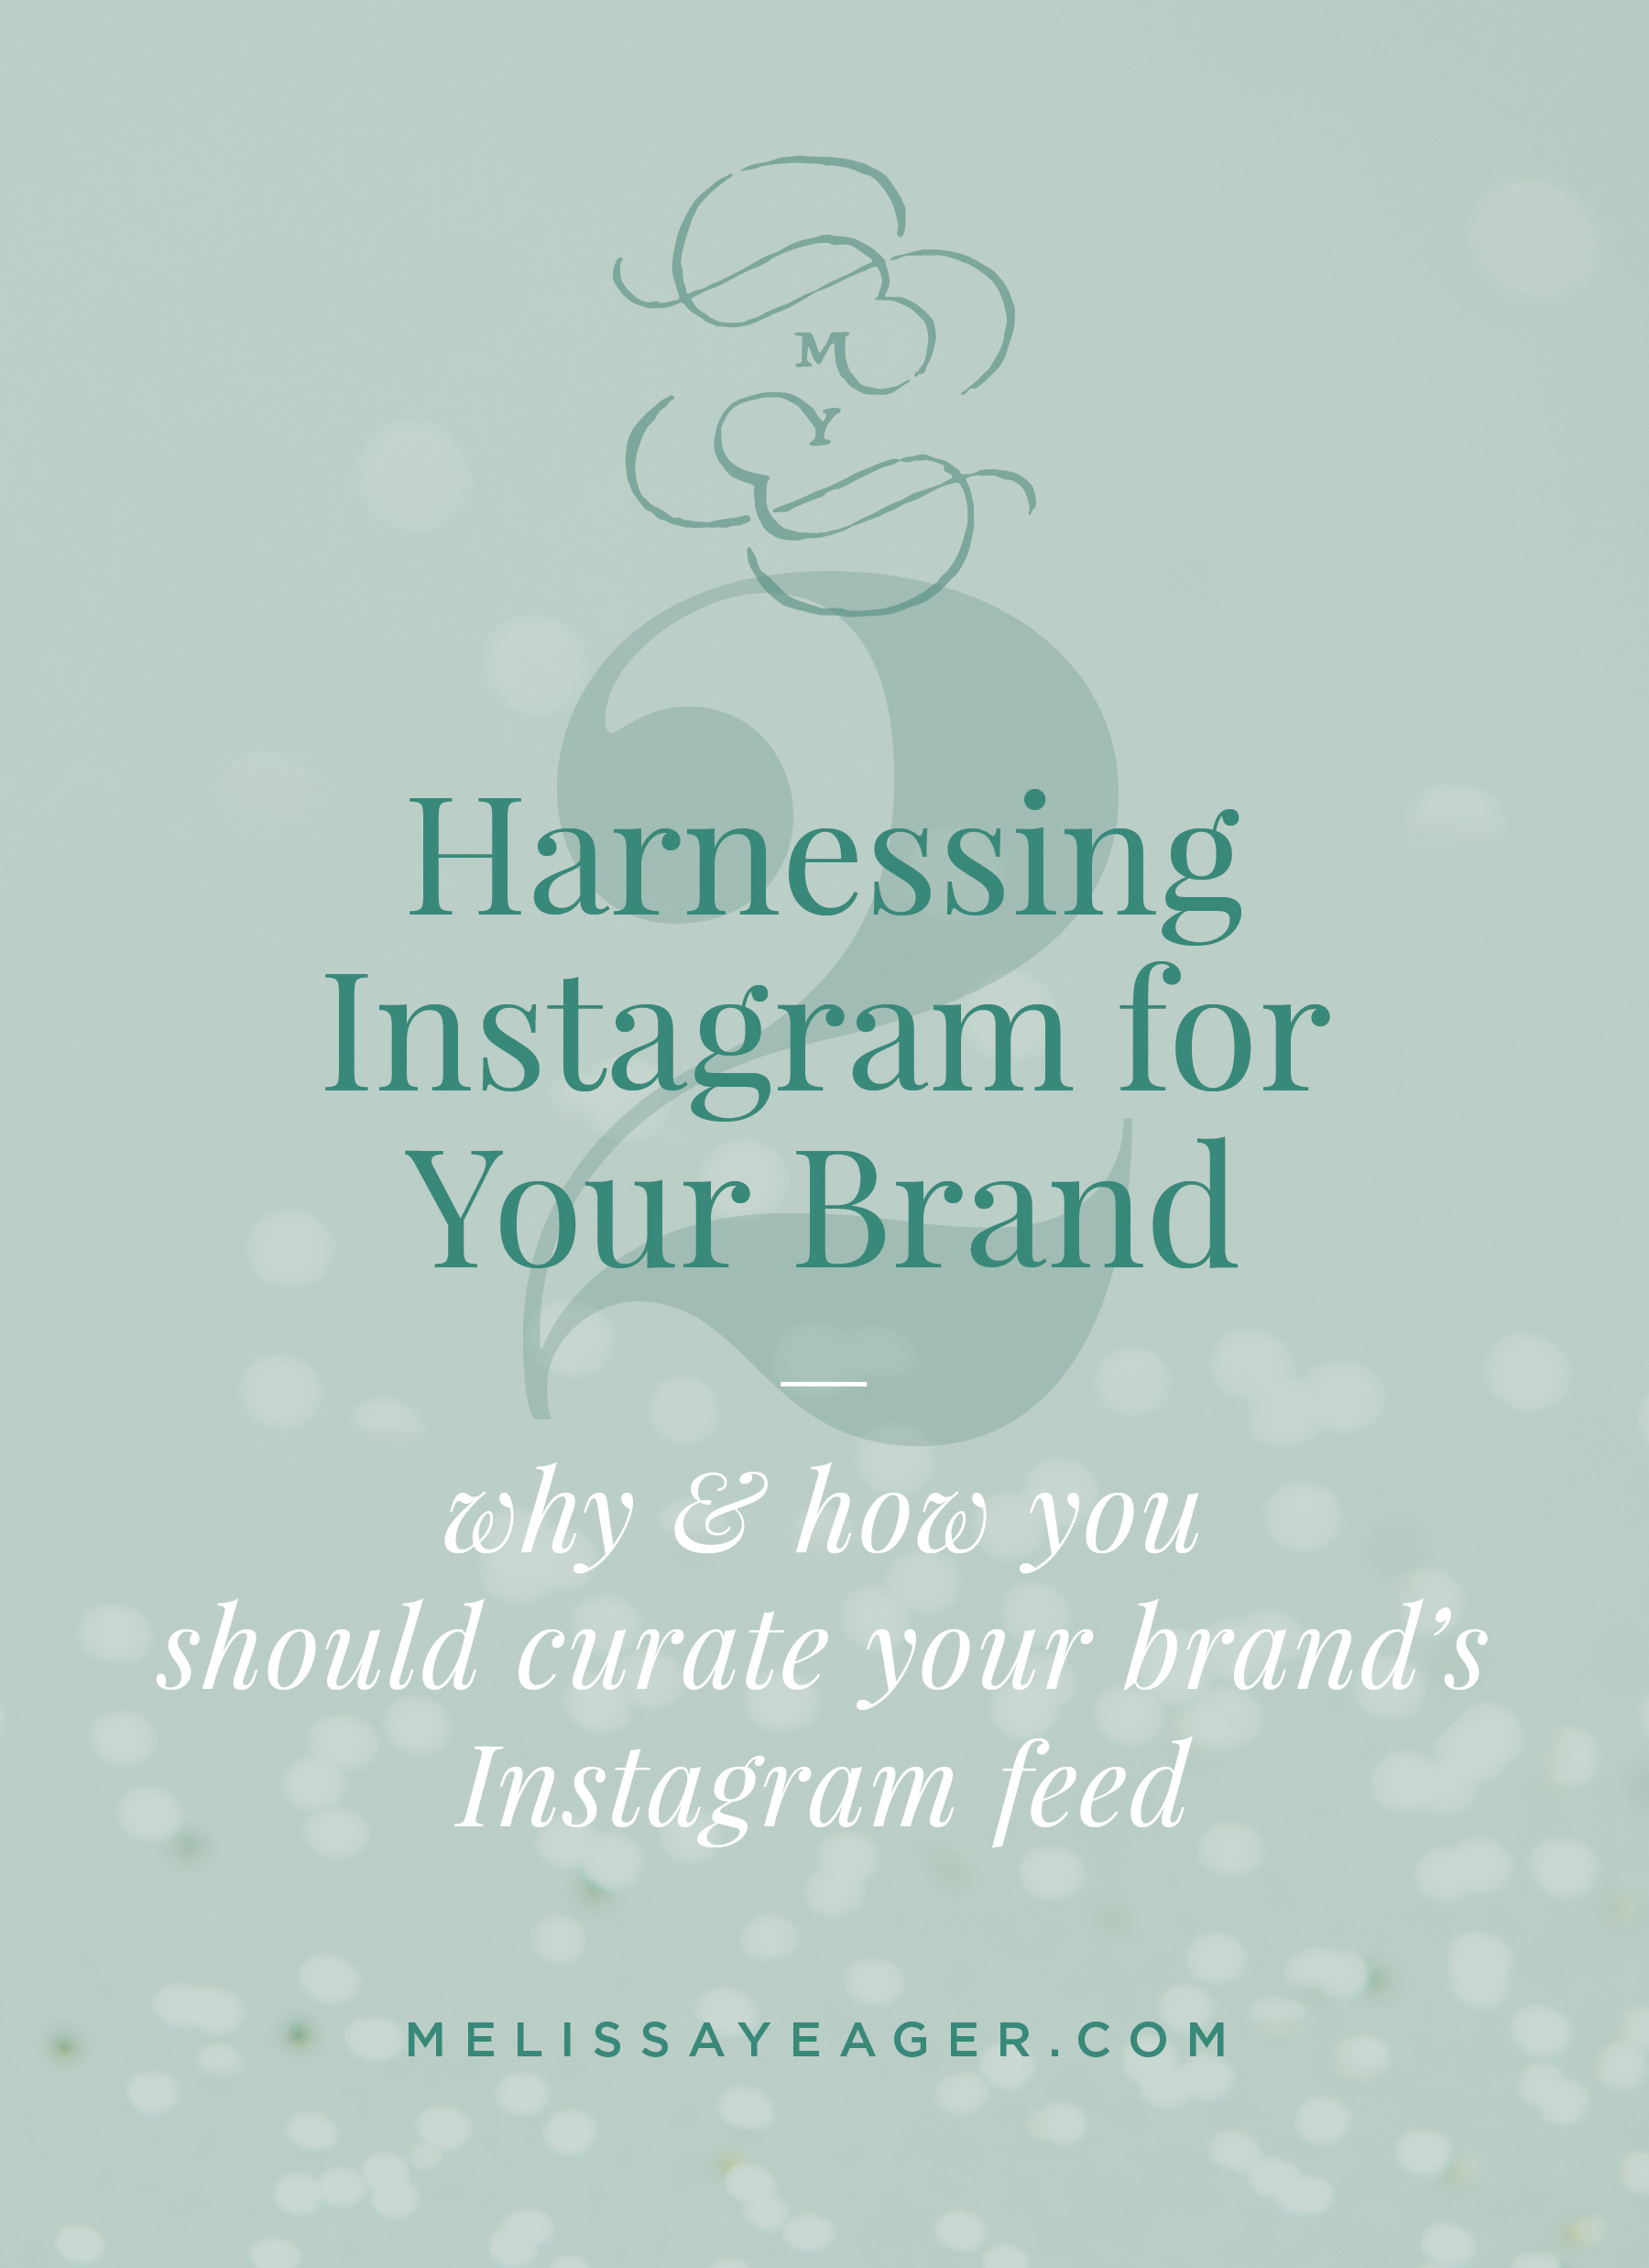 Harnessing Instagram for Your Brand: Part 2 - why & how you should curate your brand's Instagram feed